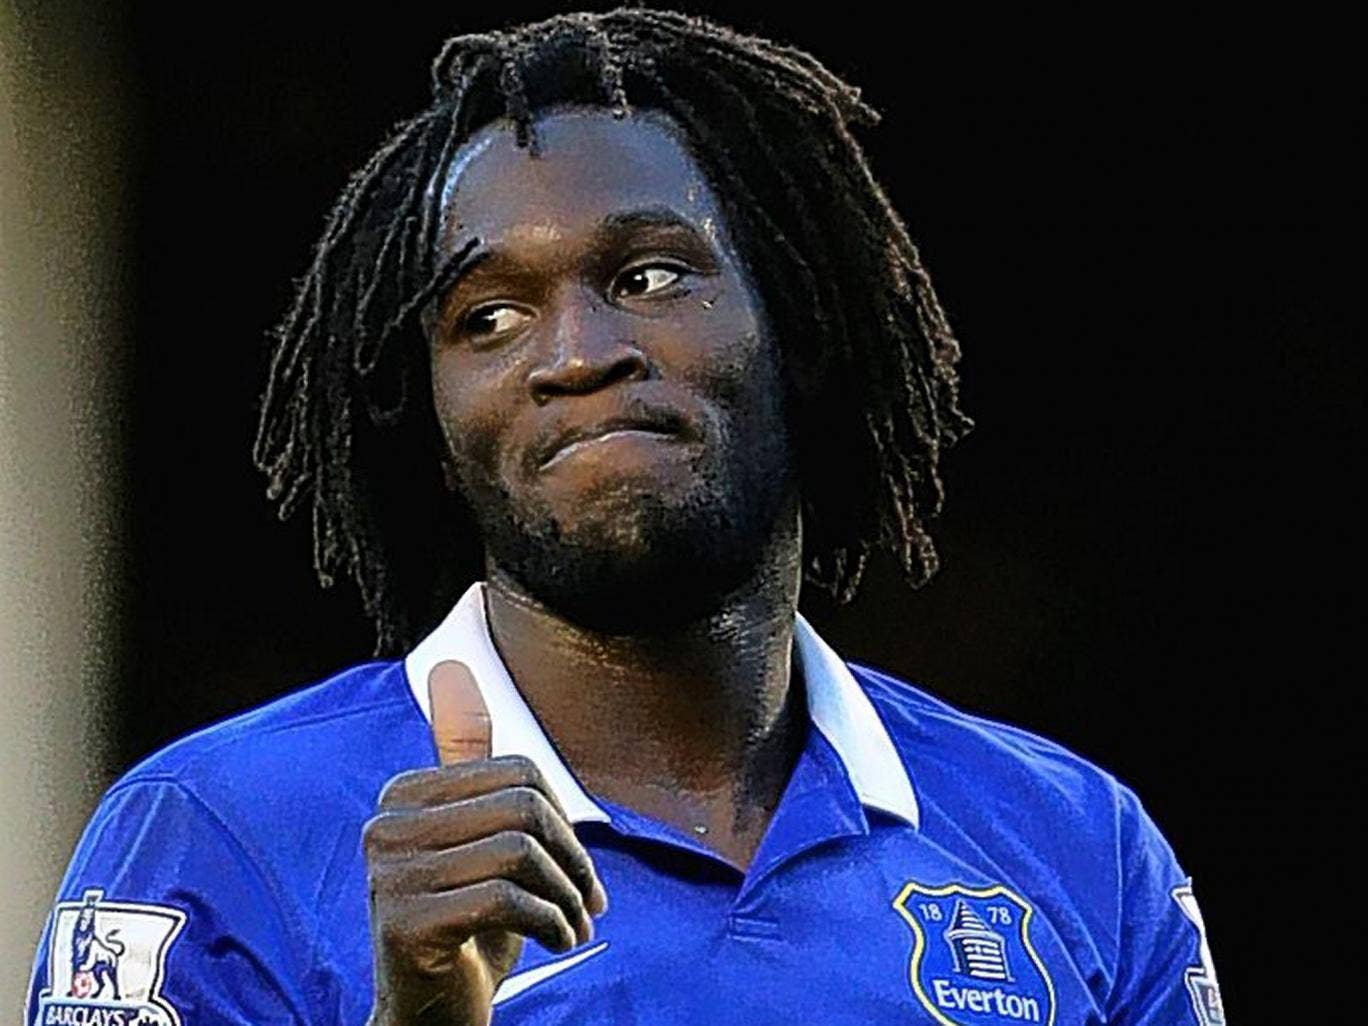 Stop the right to roam: Players like Romelu Lukaku must not be loaned to another Premier League side in tactical deals that benefit the parent clubs